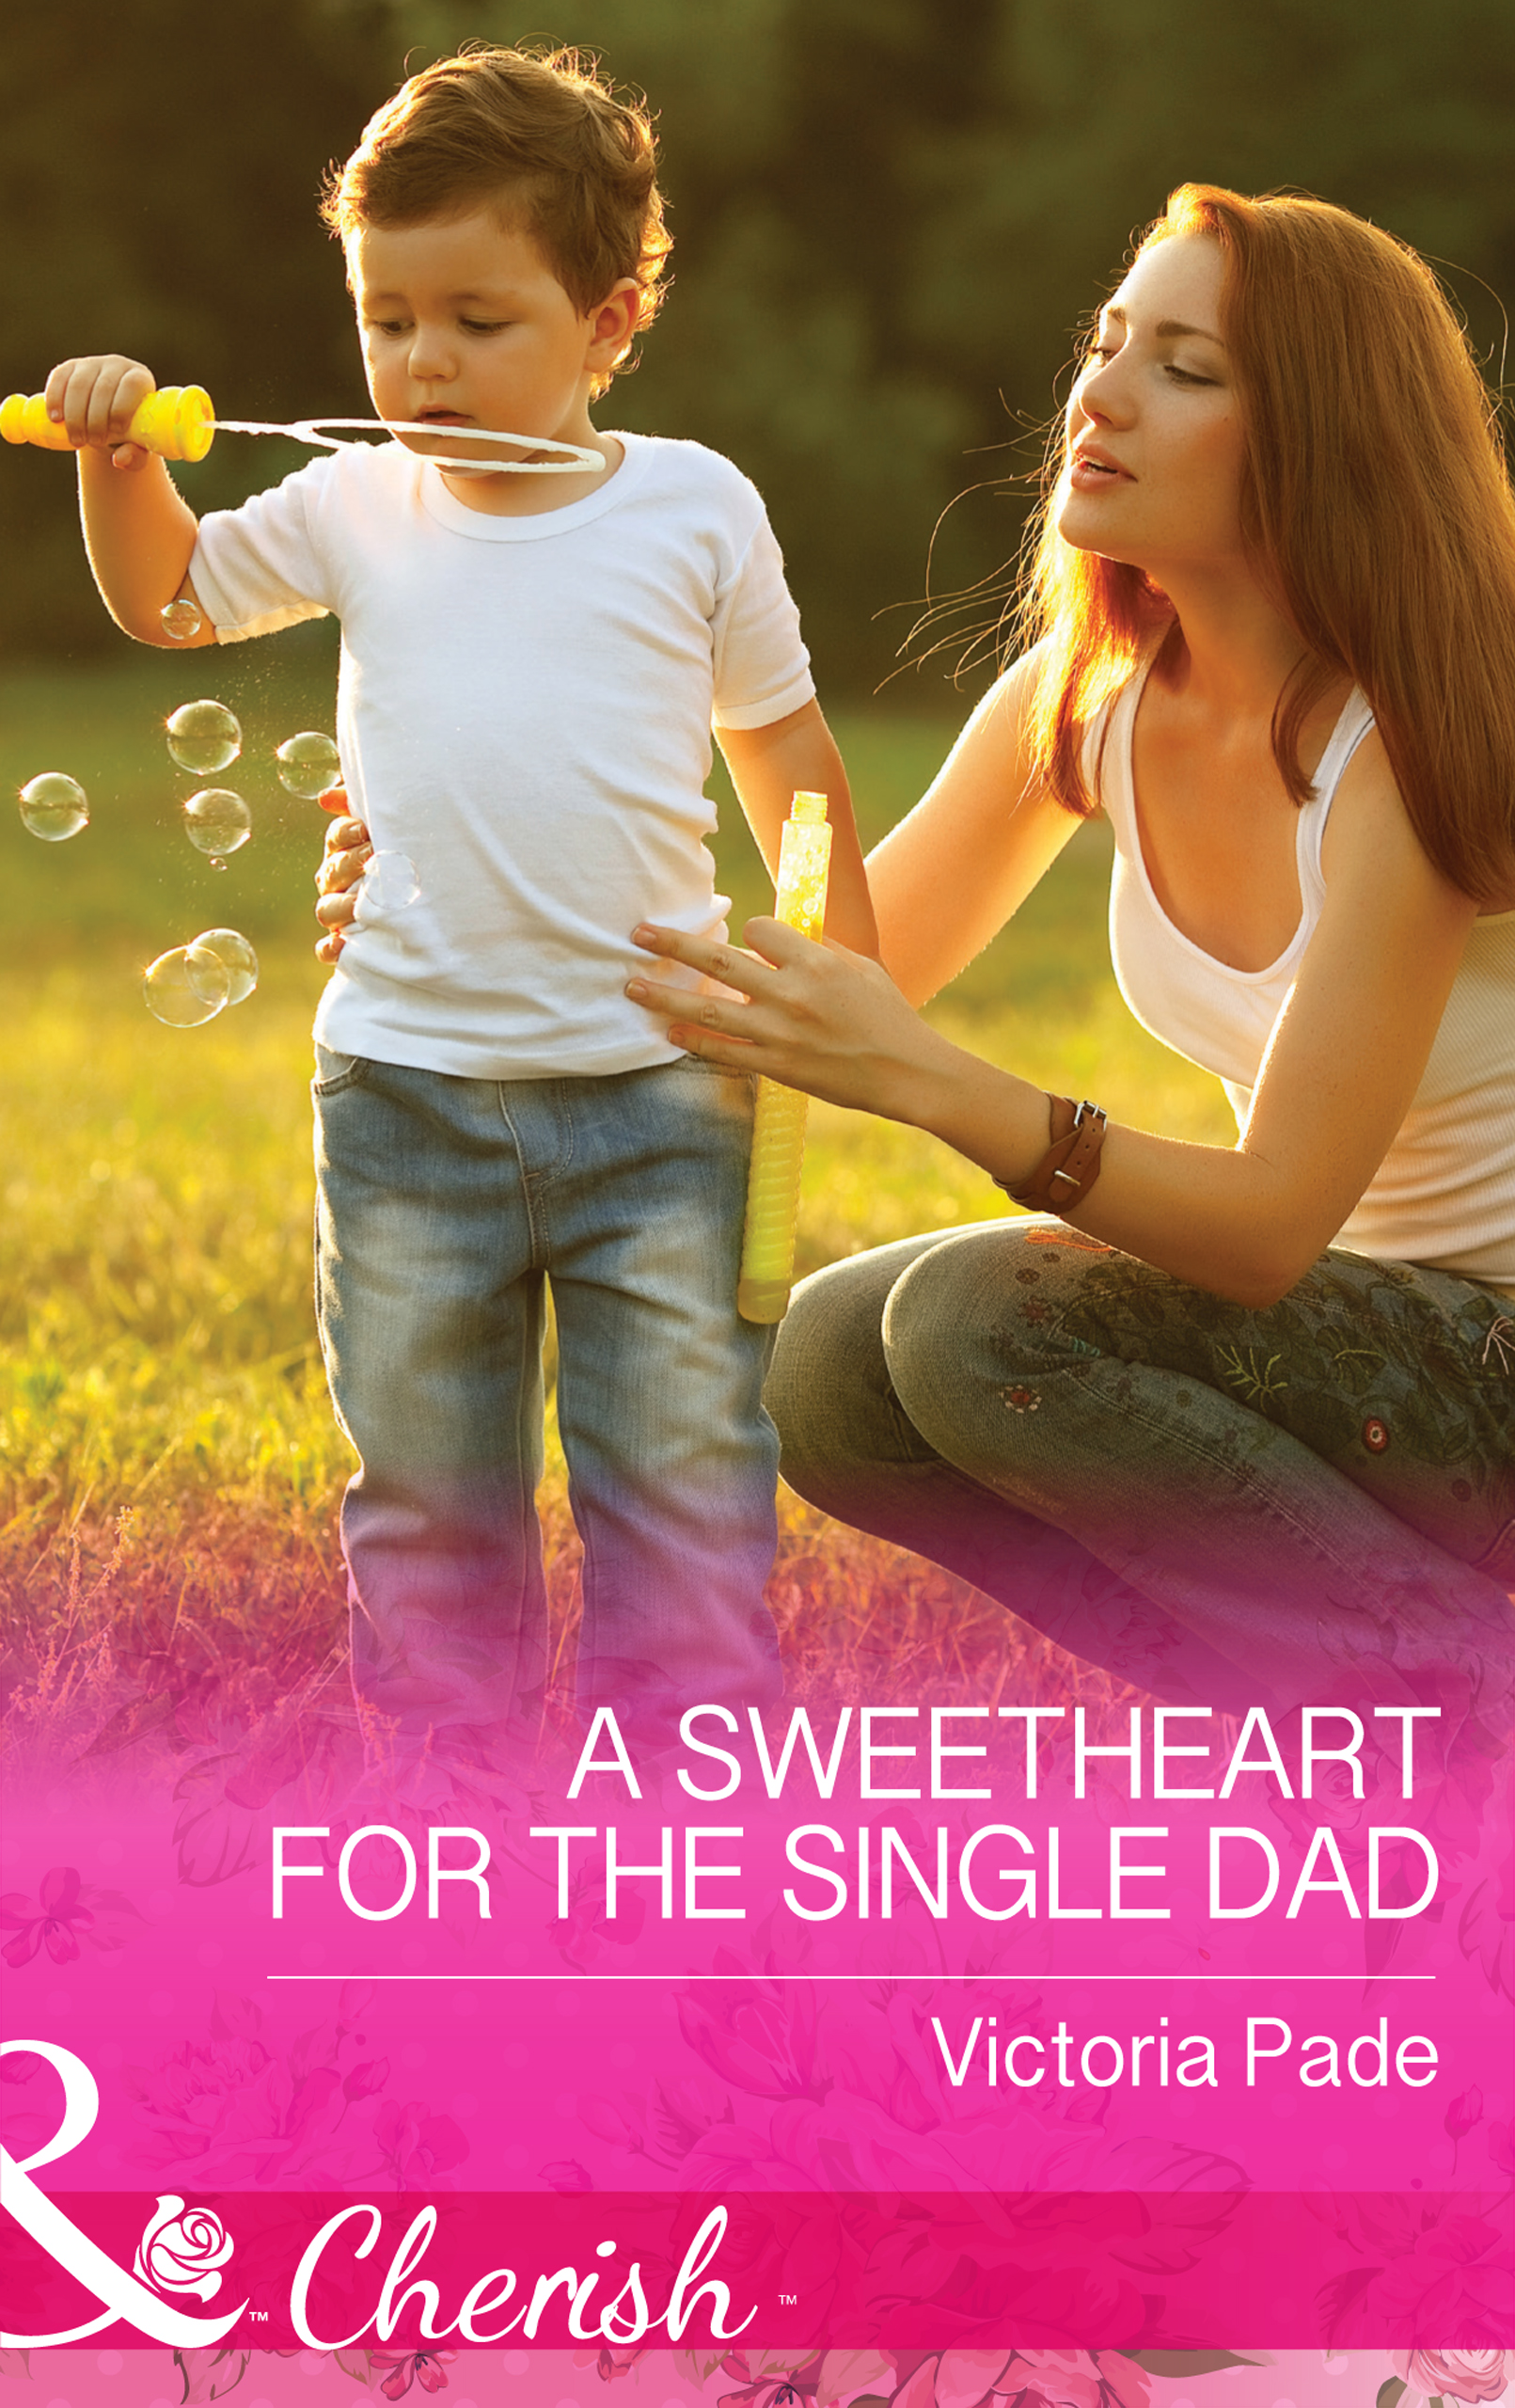 A Sweetheart for the Single Dad